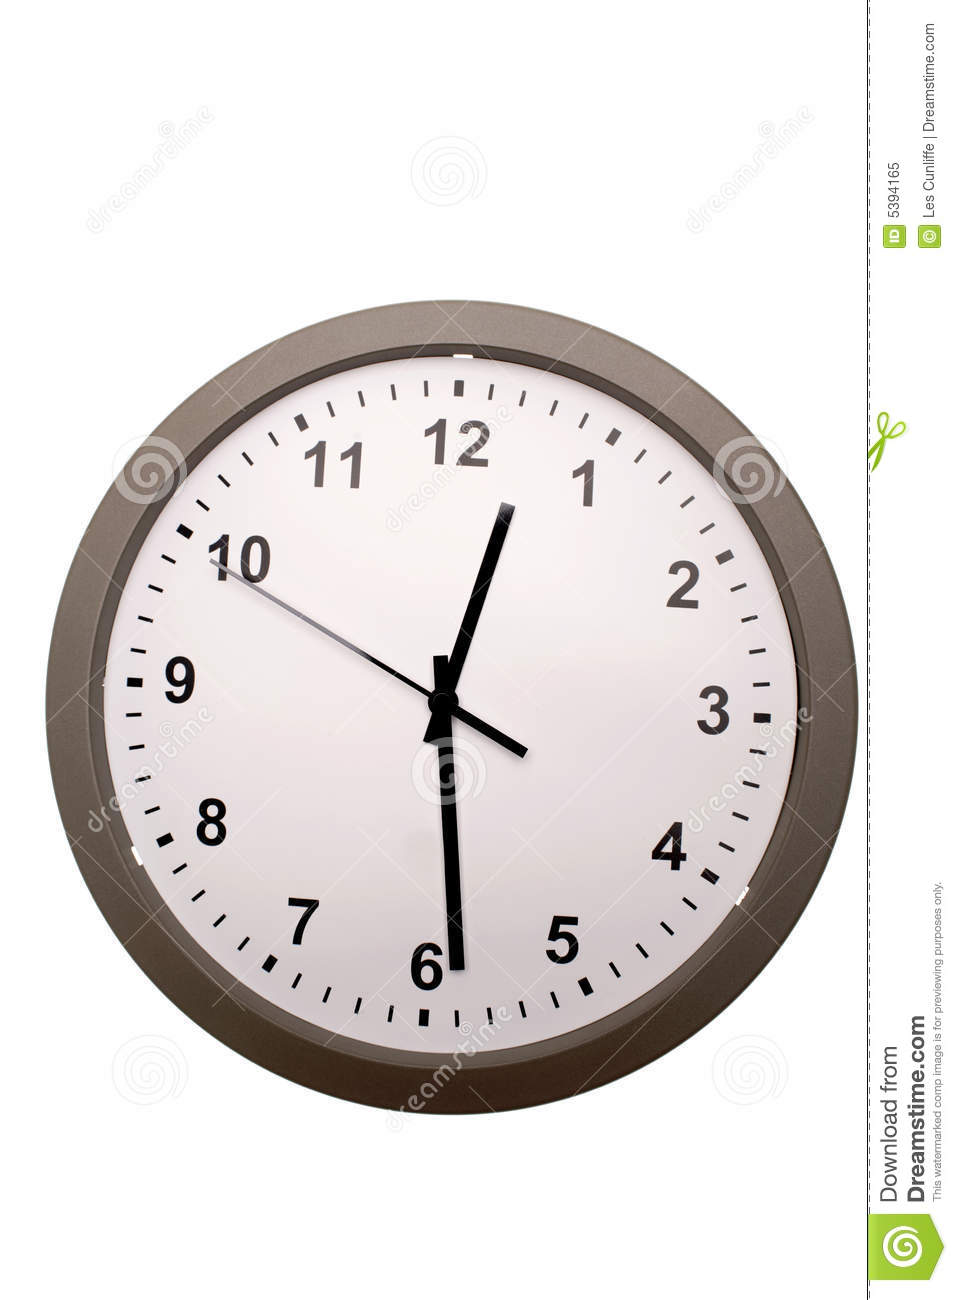 Lunch Time Clock Royalty Free Stock Photo Image 5394165